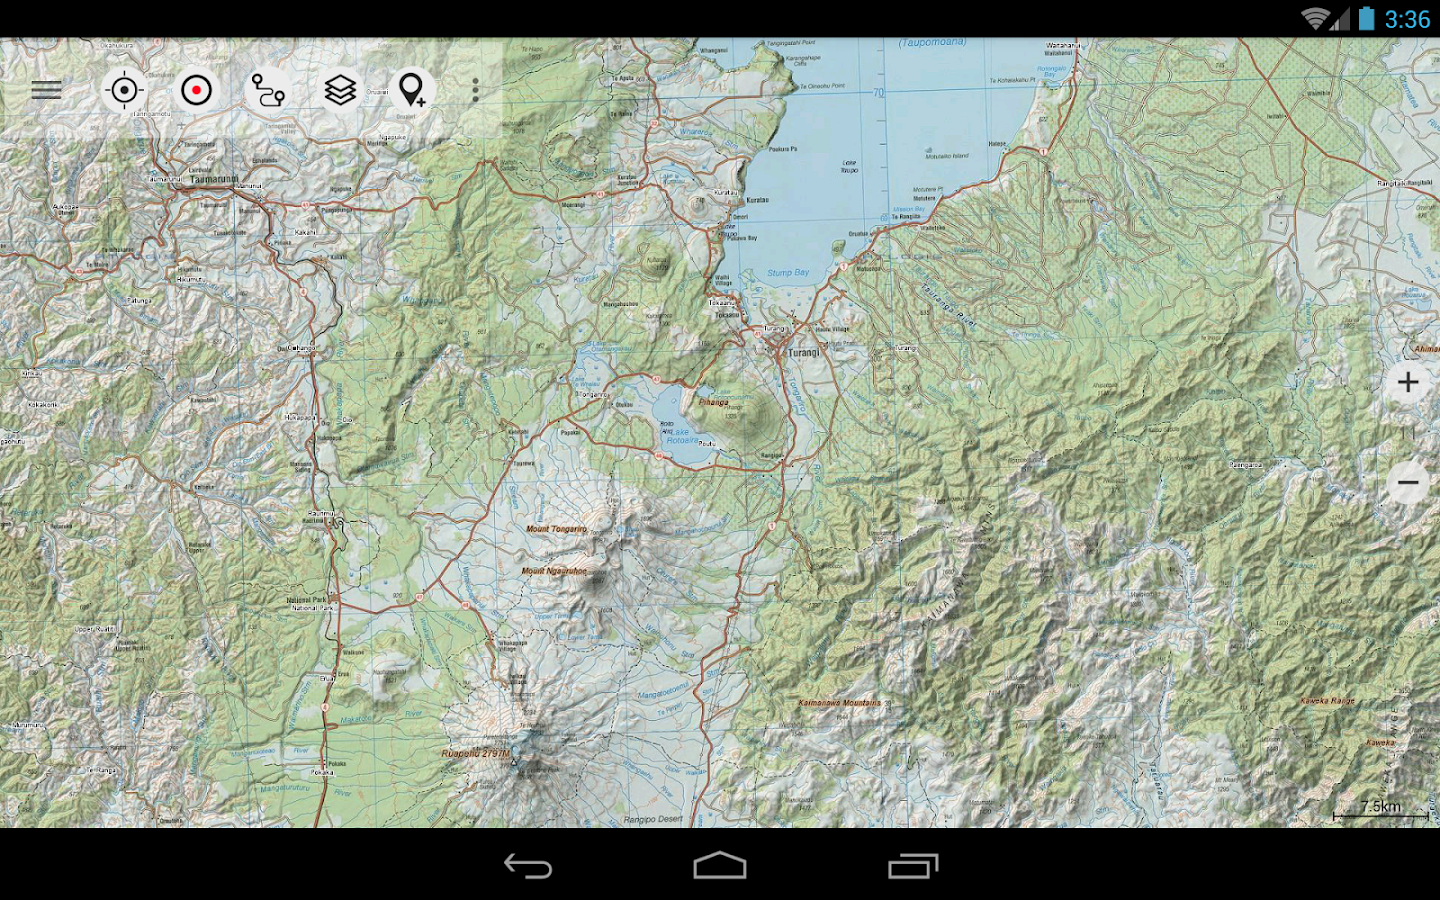 New Zealand Topo Maps Pro Android Apps On Google Play - Us topographic map